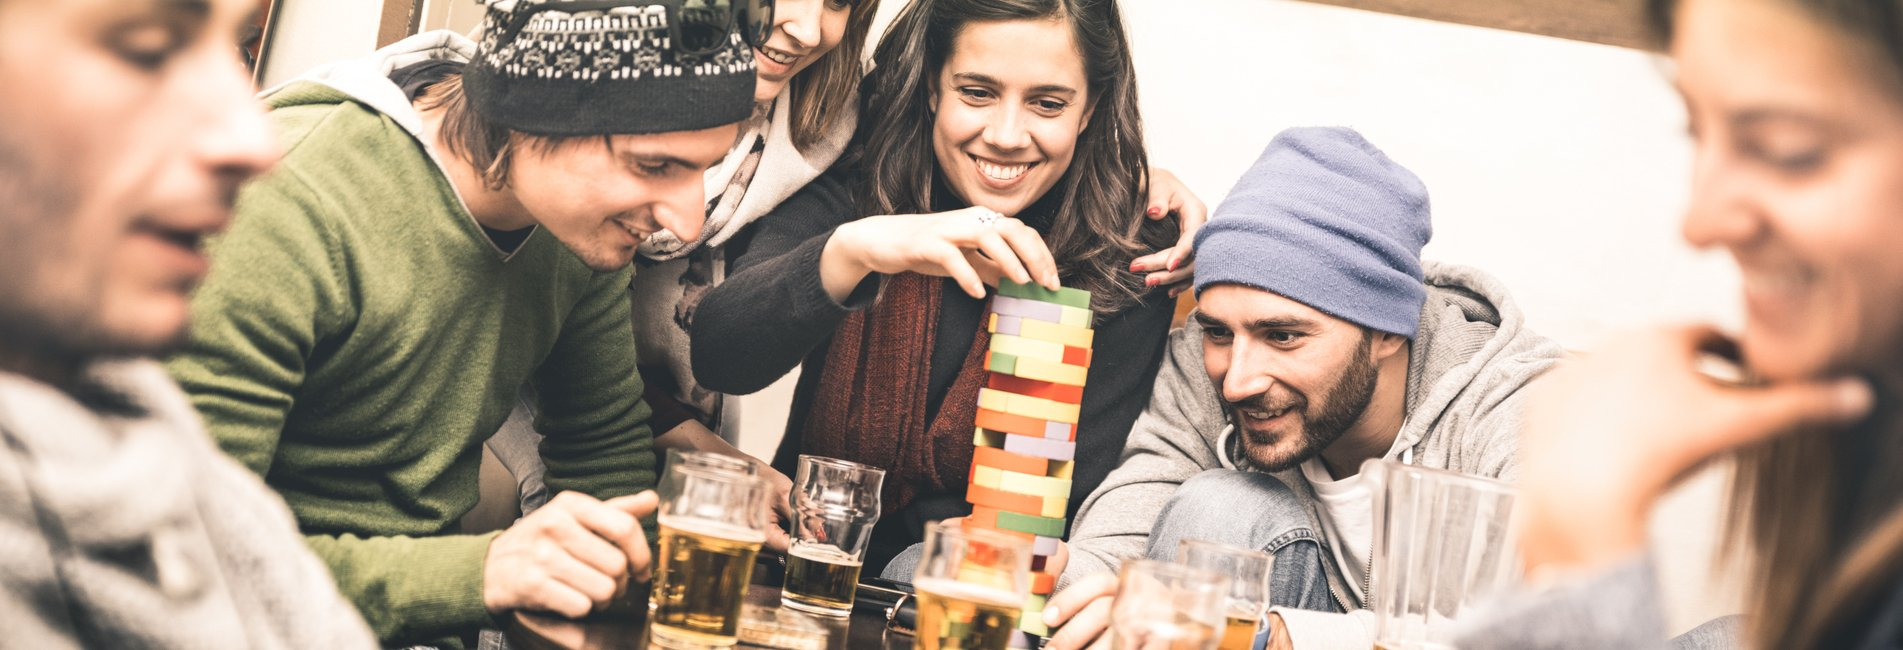 Drinking Drug Abuse and Greek Life Resurgence – College students drink and play a game. Substance abuse is a common problem for many who become involved in Greek life on college campuses.